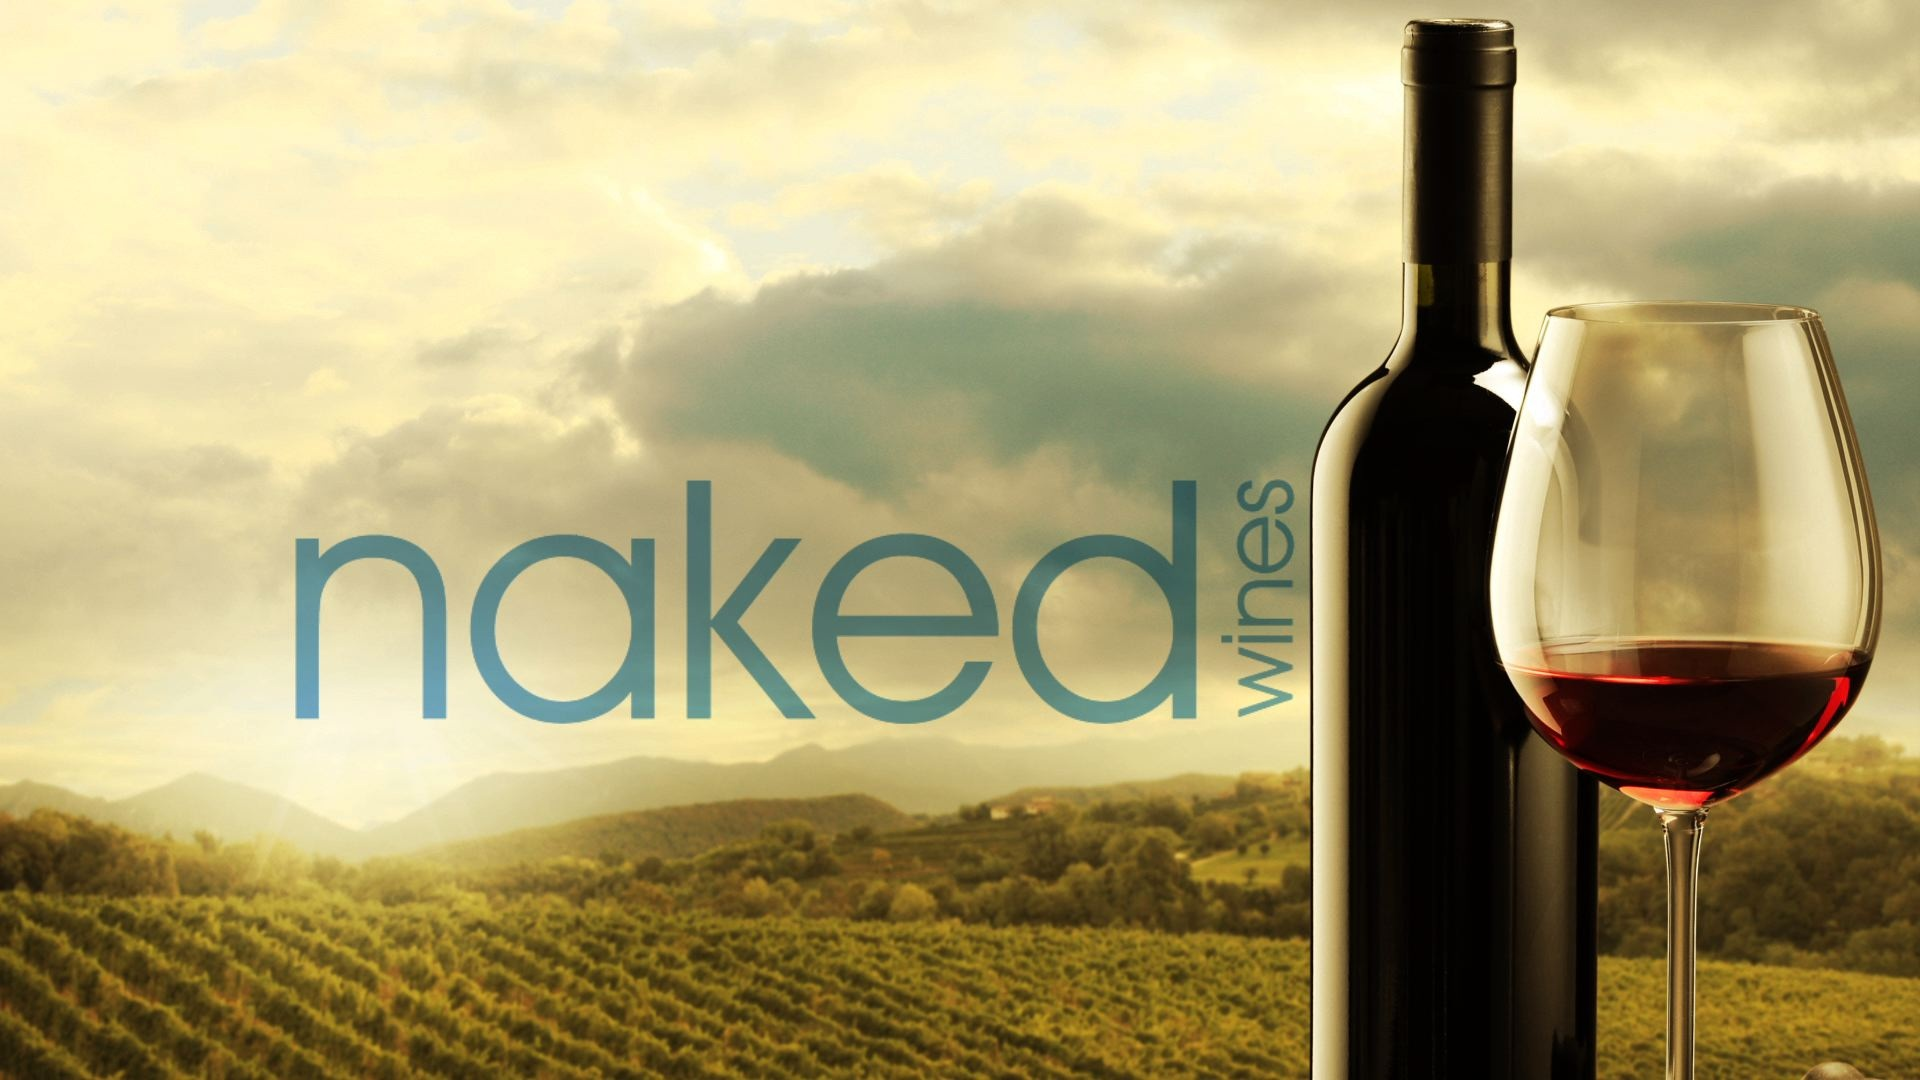 20 Things You Didn't Know About Naked Wines